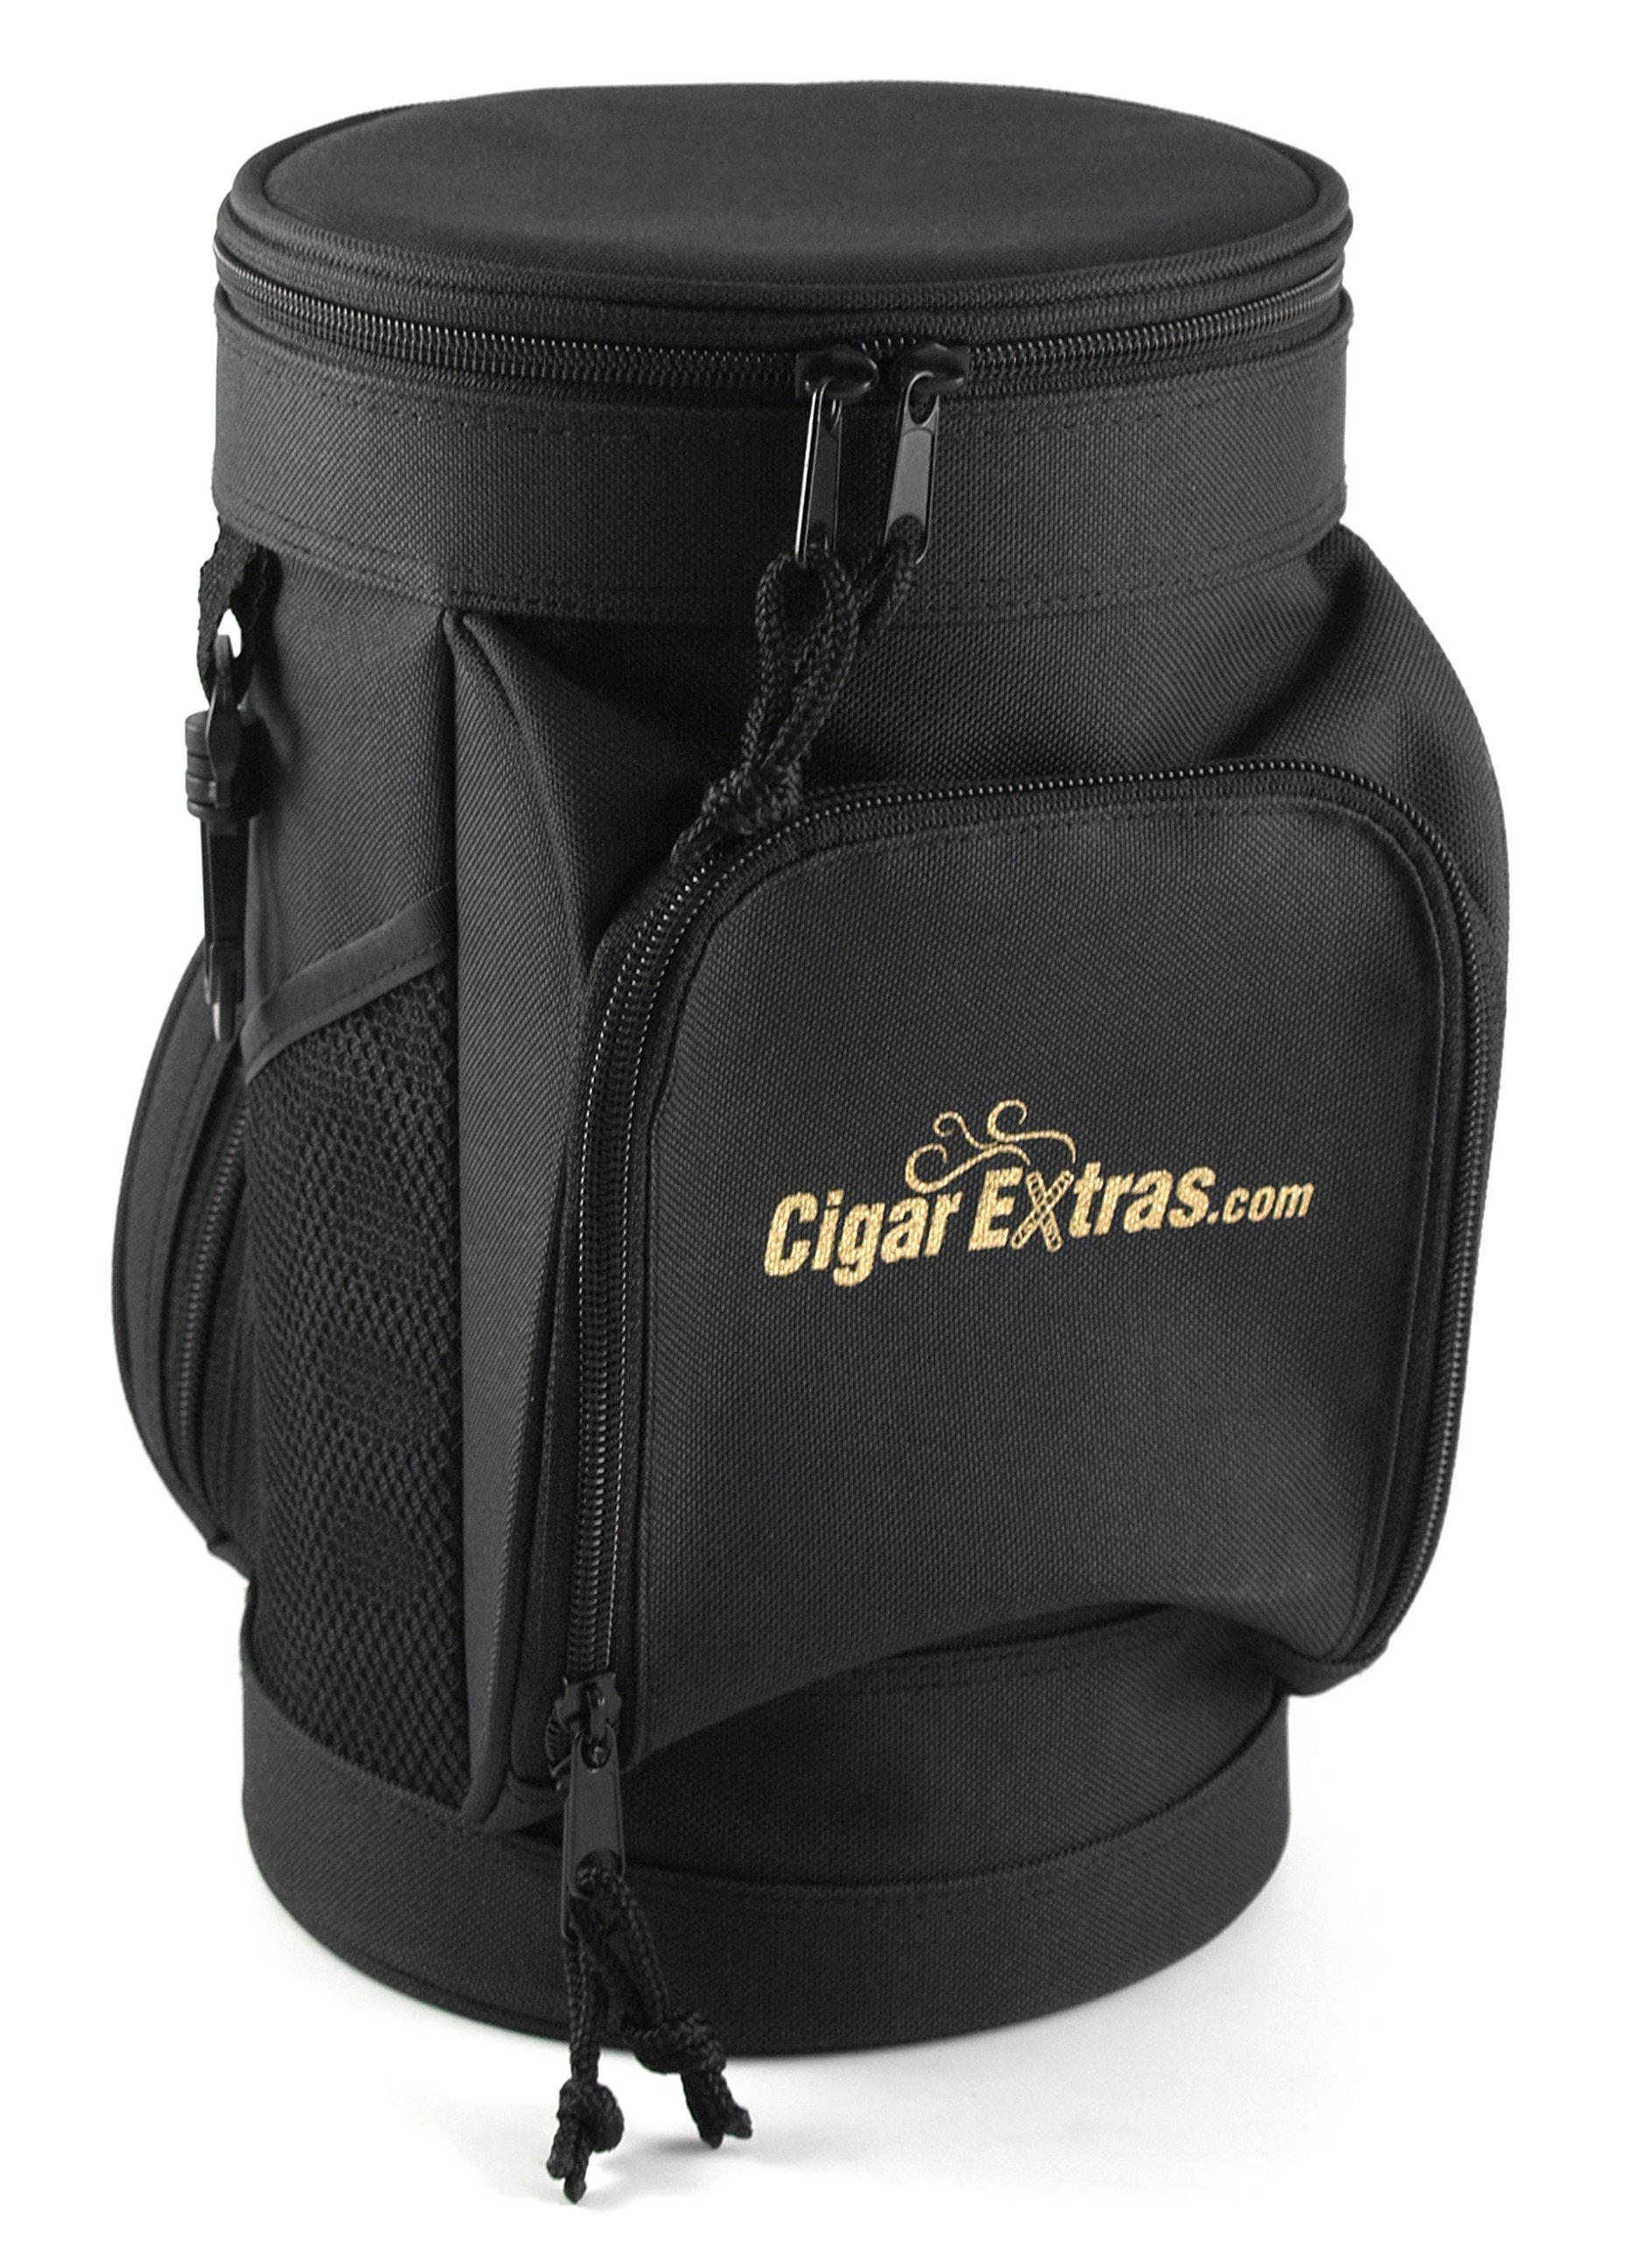 CigarExtras Le Tube Travel 20 Cigar Case Shoulder Bag